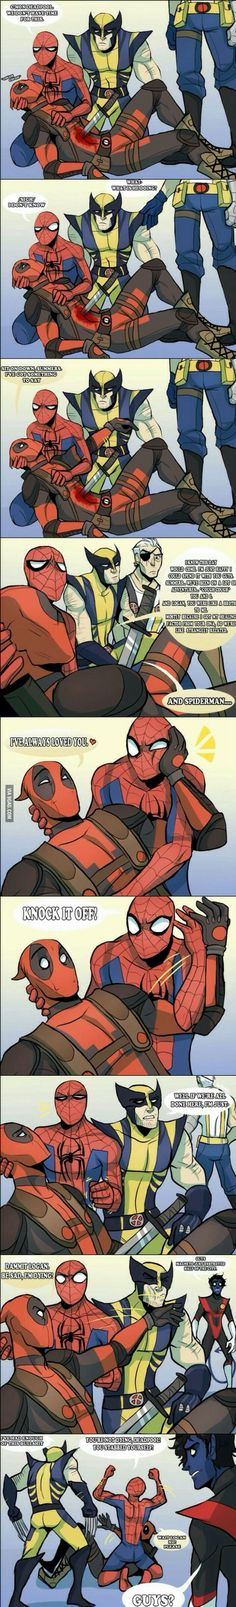 "Pahaha! Freaking Deadpool. He's so emotional and Spiderman is all ""OK, put your feelings away and let's go."""